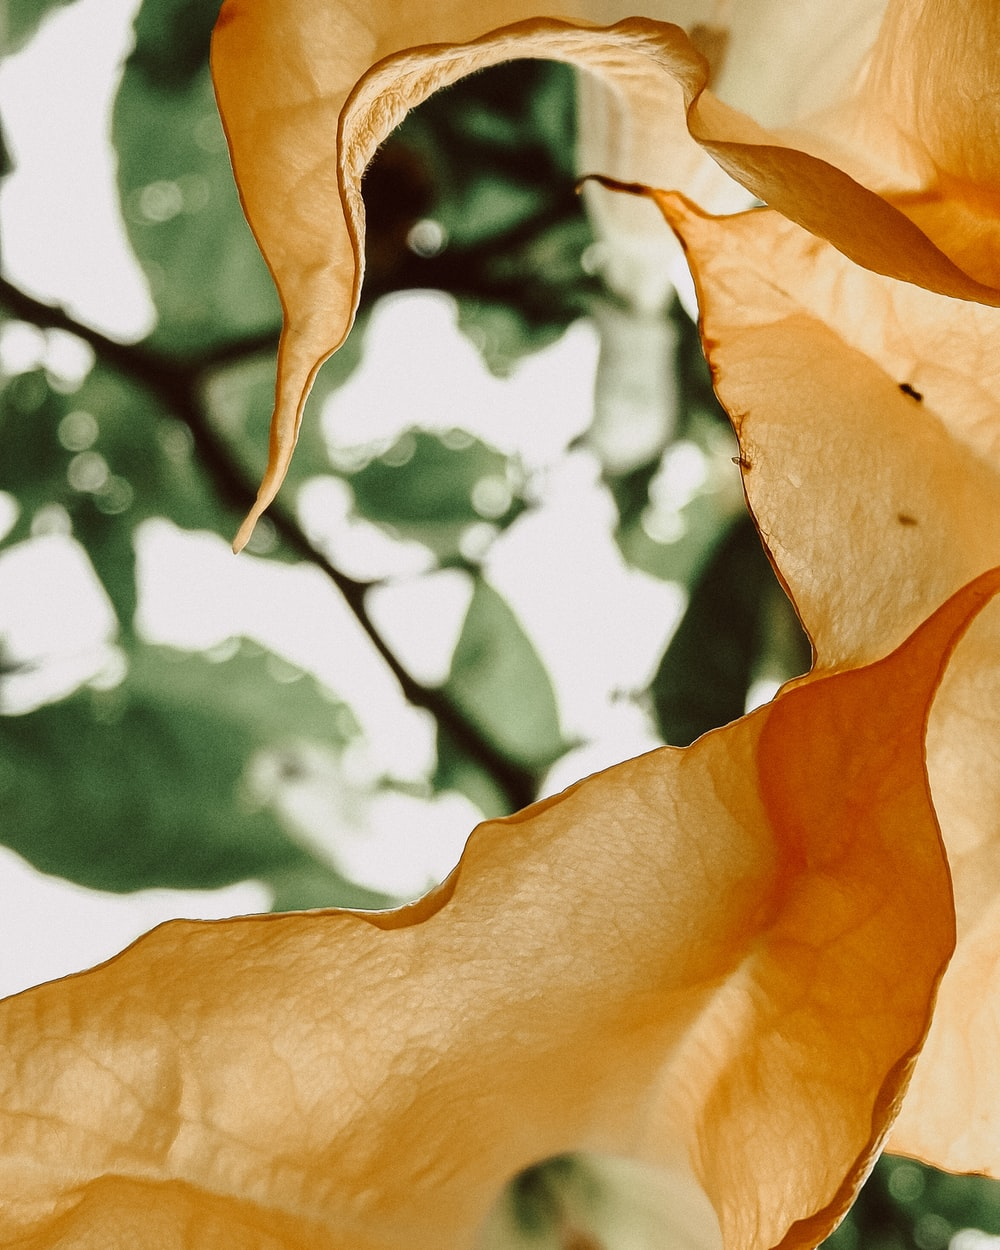 brown leaf in close up photography